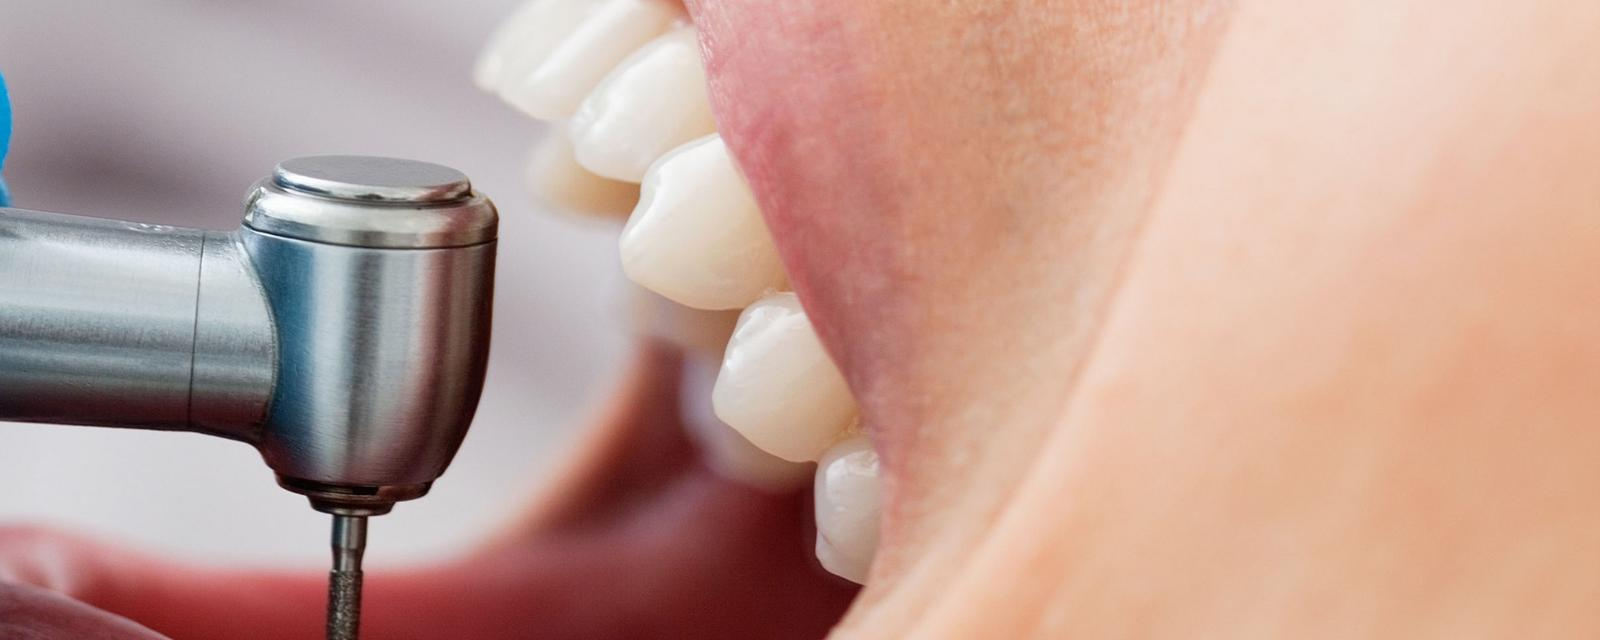 Could a robot replace your dentist?